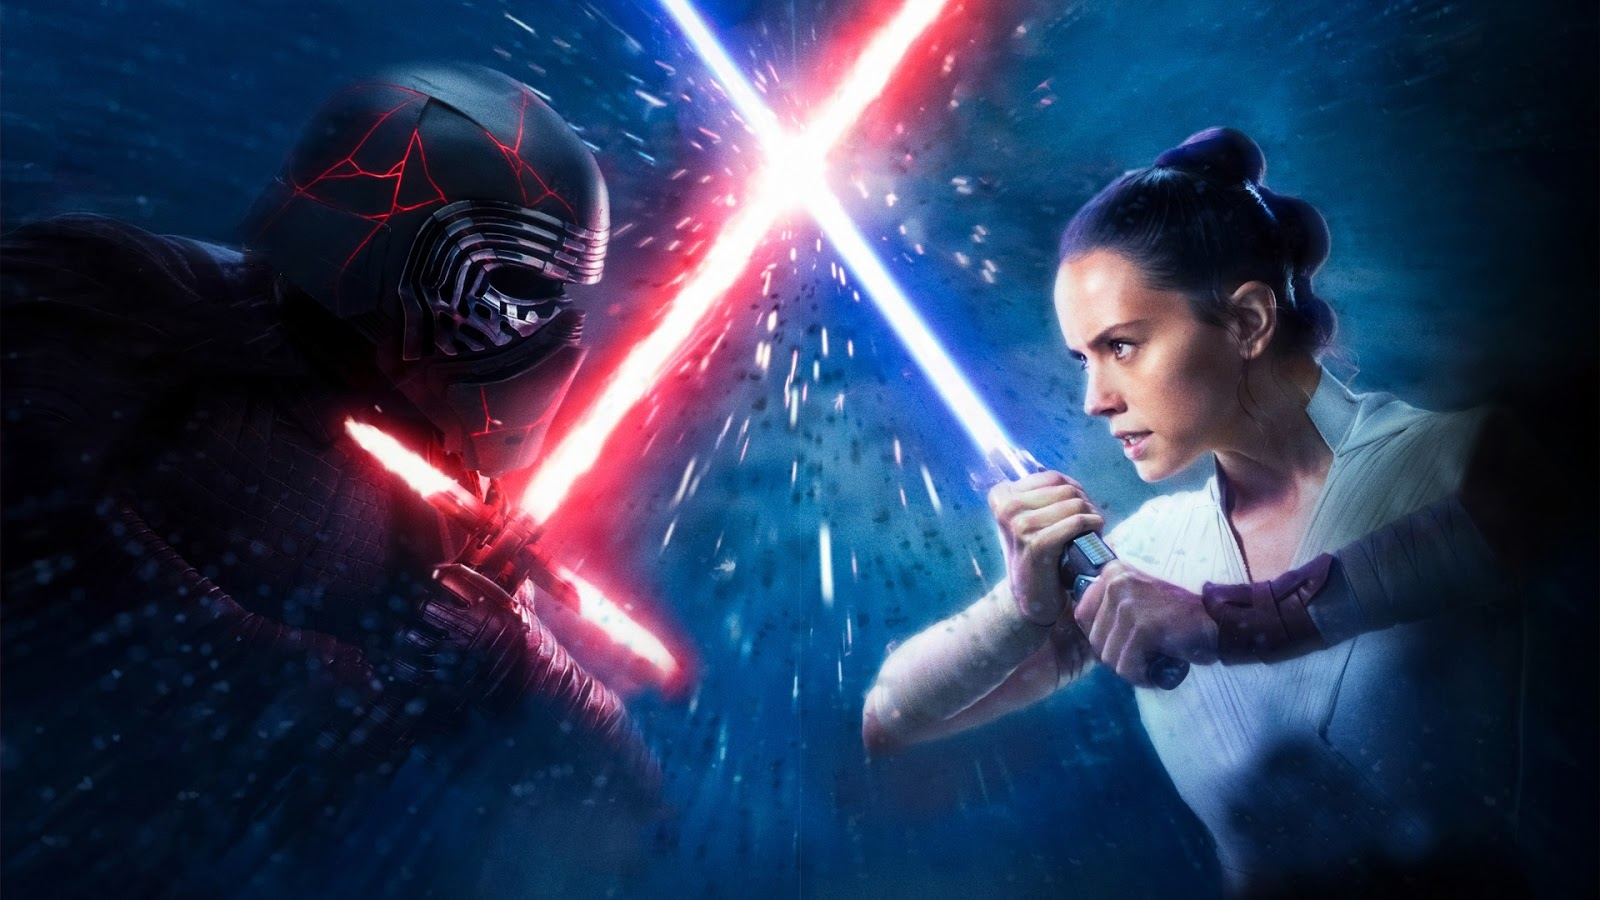 Star Wars The Rise Of Skywalker 2019 Movie Wallpapers Wallpapers Overflow